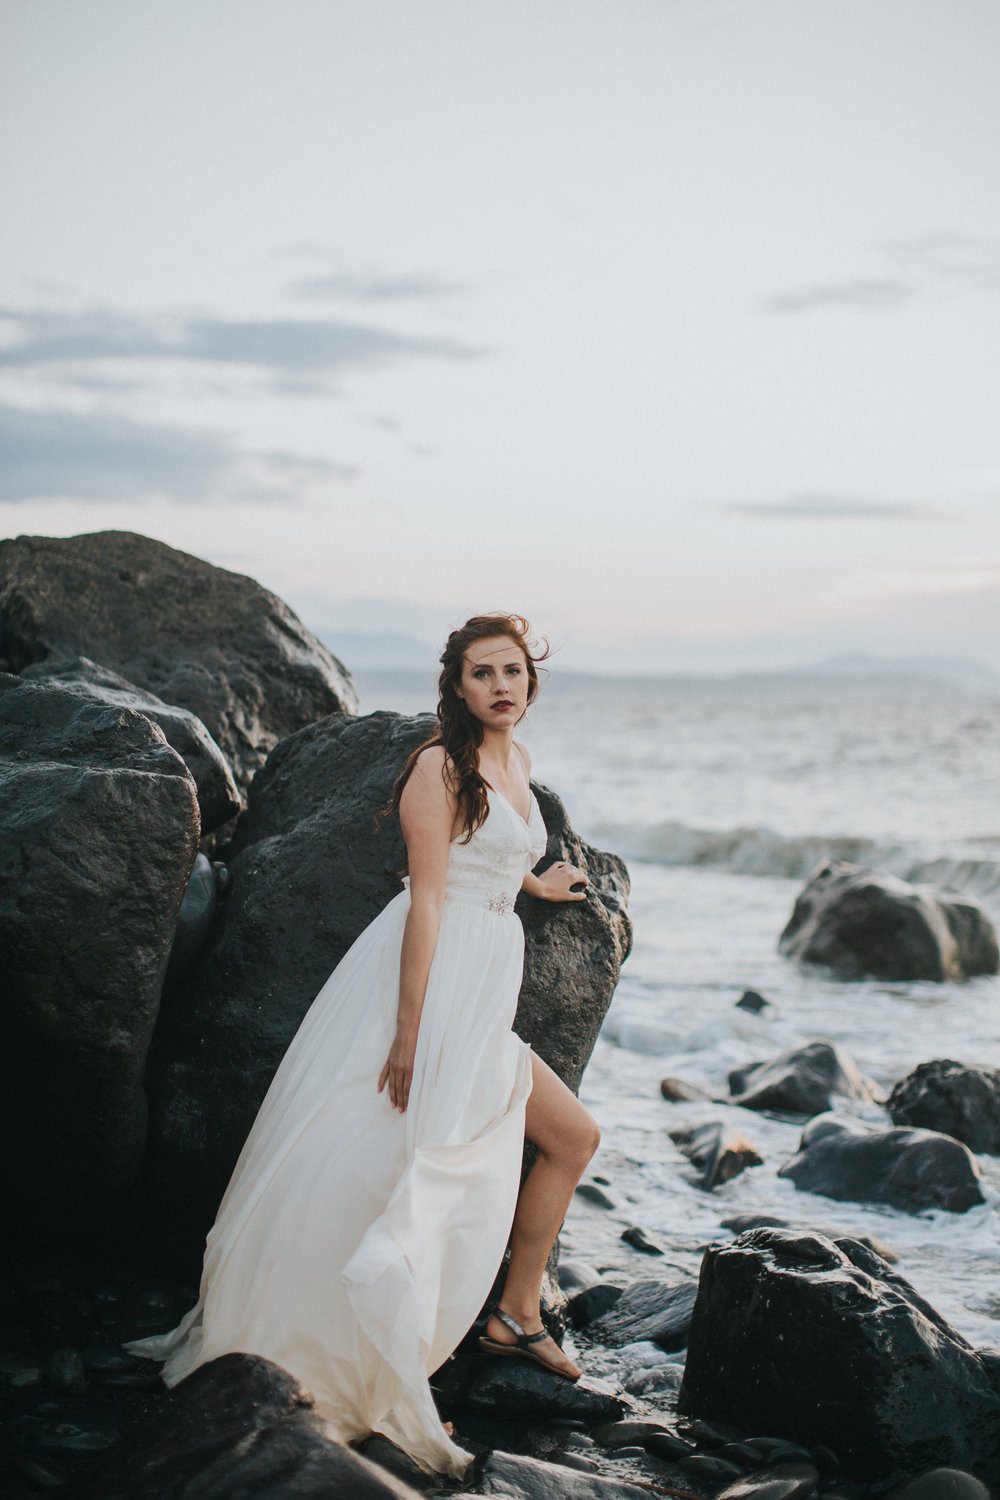 Port-Angeles-Photographer-Olympic-Peninsula-Wedding-Ediz-Hook-bride-dress-Kayla-Dawn-Photography-Olympic-Peninsula-PNW-Photographer-Portrait-Portraiture-Natural-Golden-Hour-Beach (8).jpg